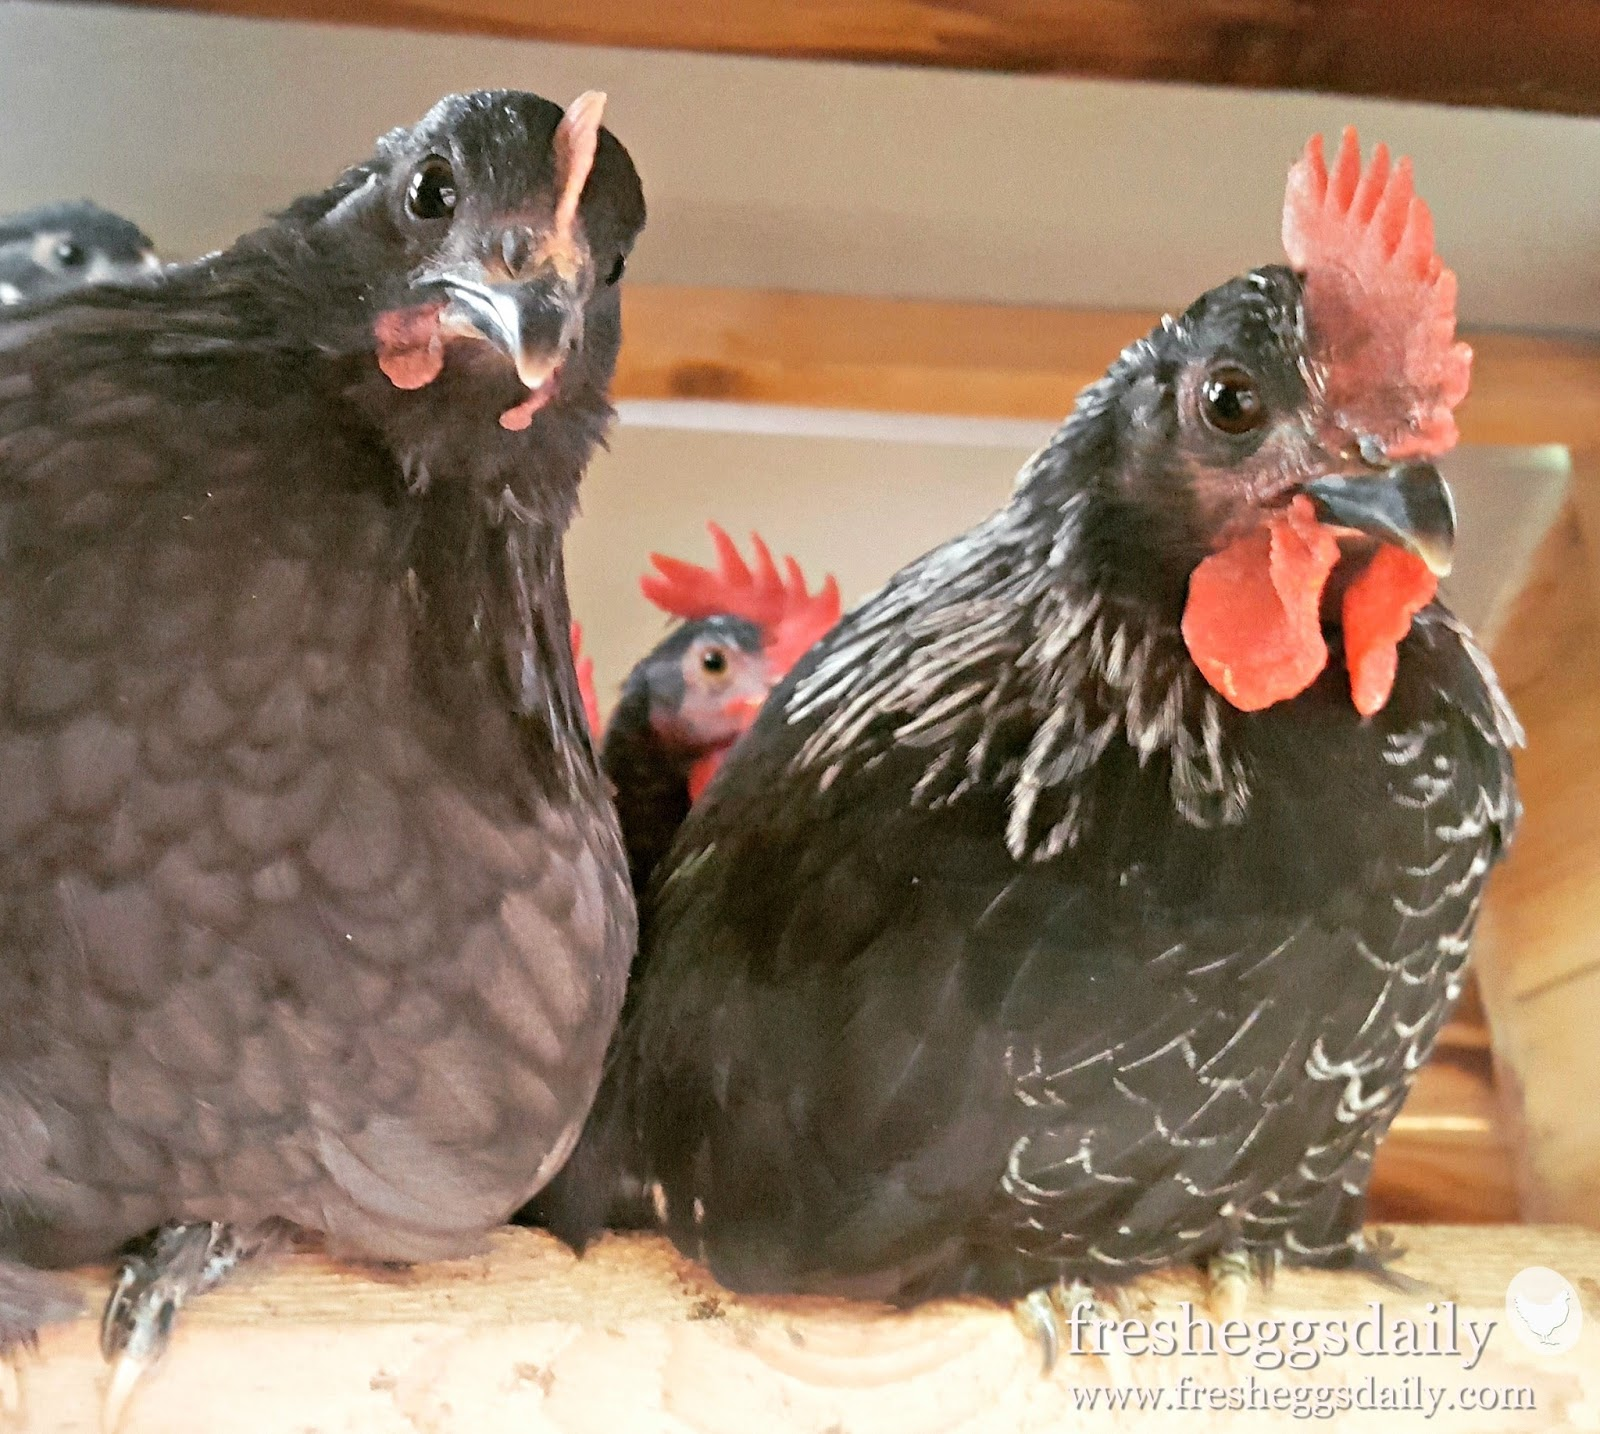 Why I Don't Keep a Rooster in My Backyard Chicken Flock